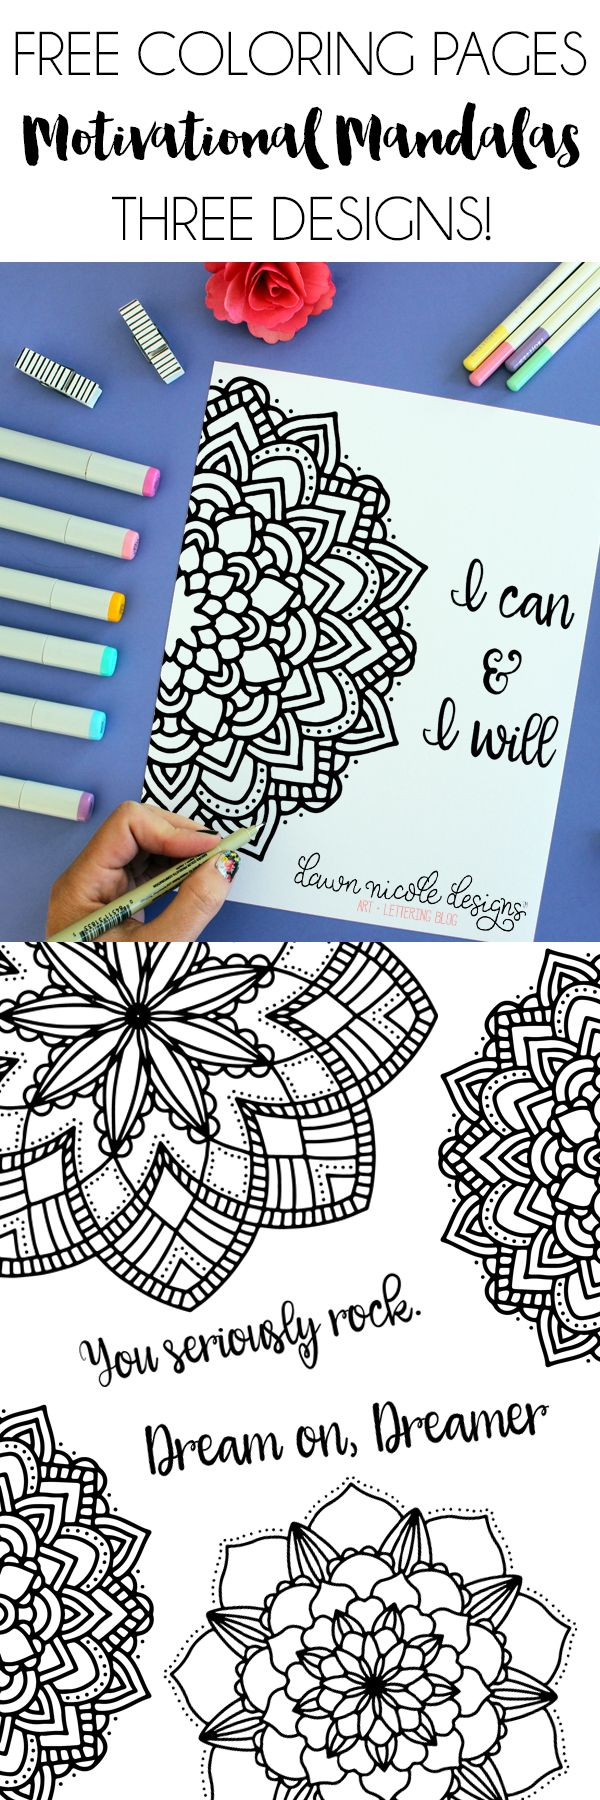 motivational mandala free coloring pages - Free Coloring Papers